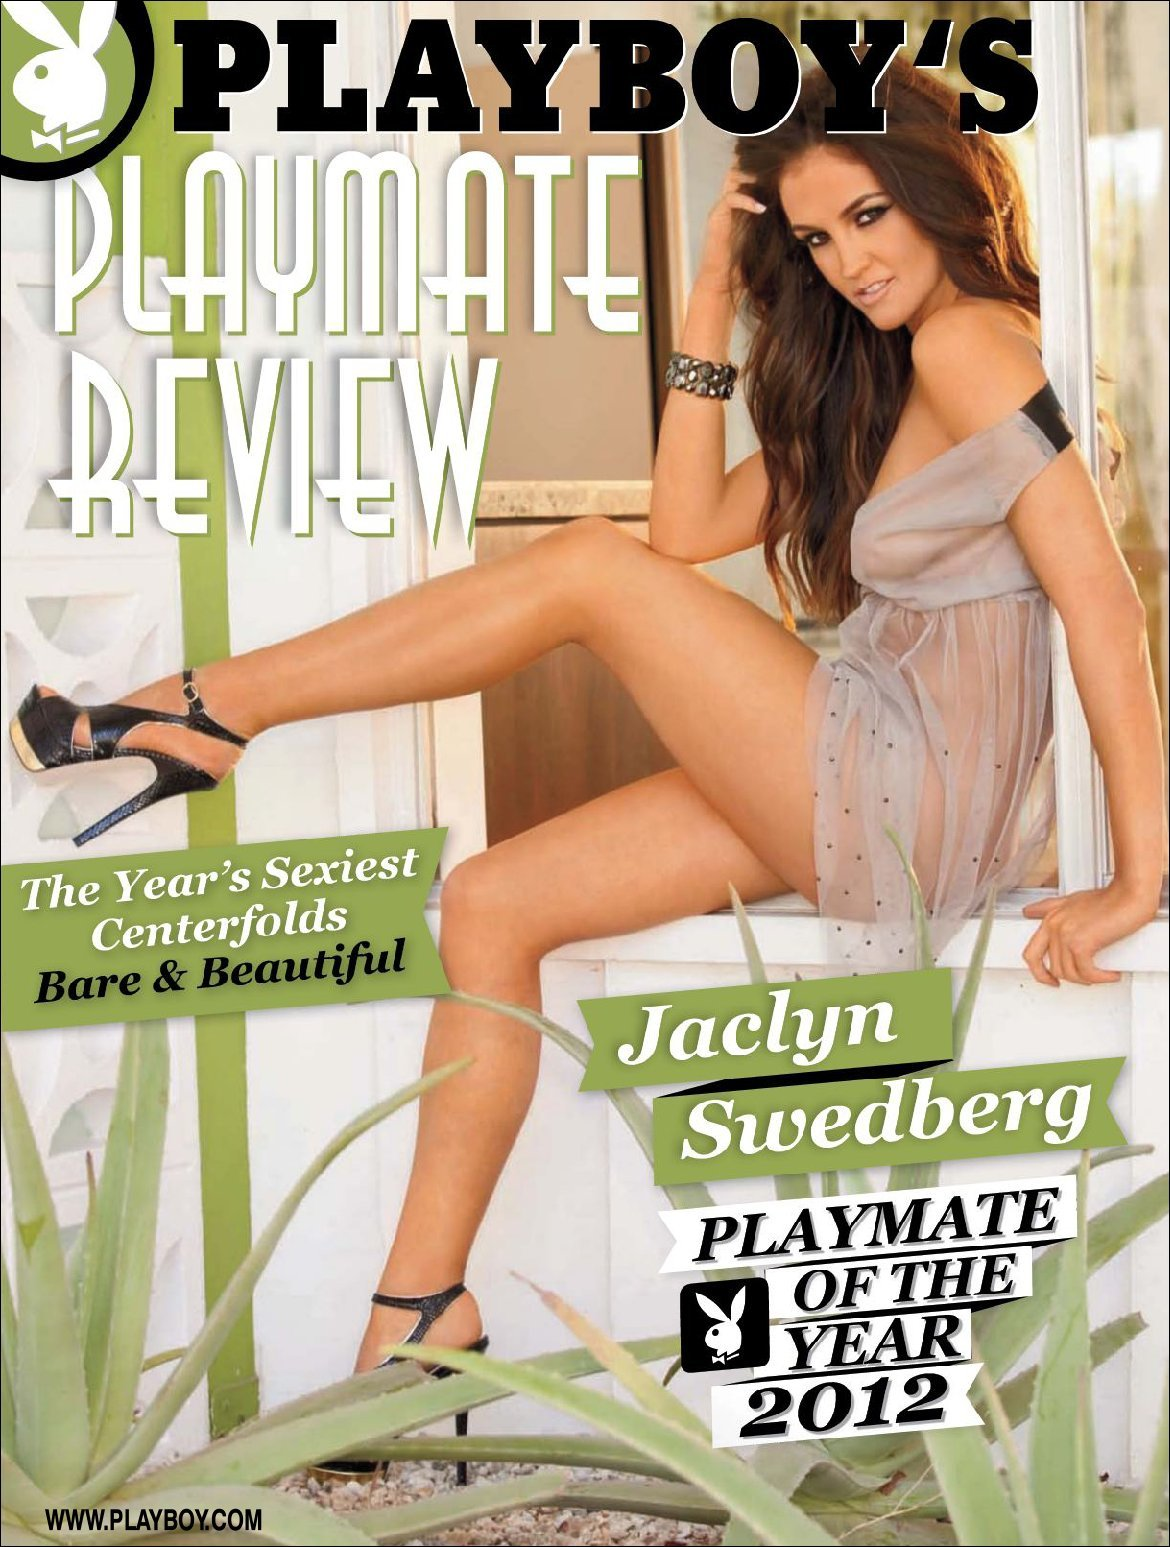 PLAYBOY'S Playmate Review (Digital)